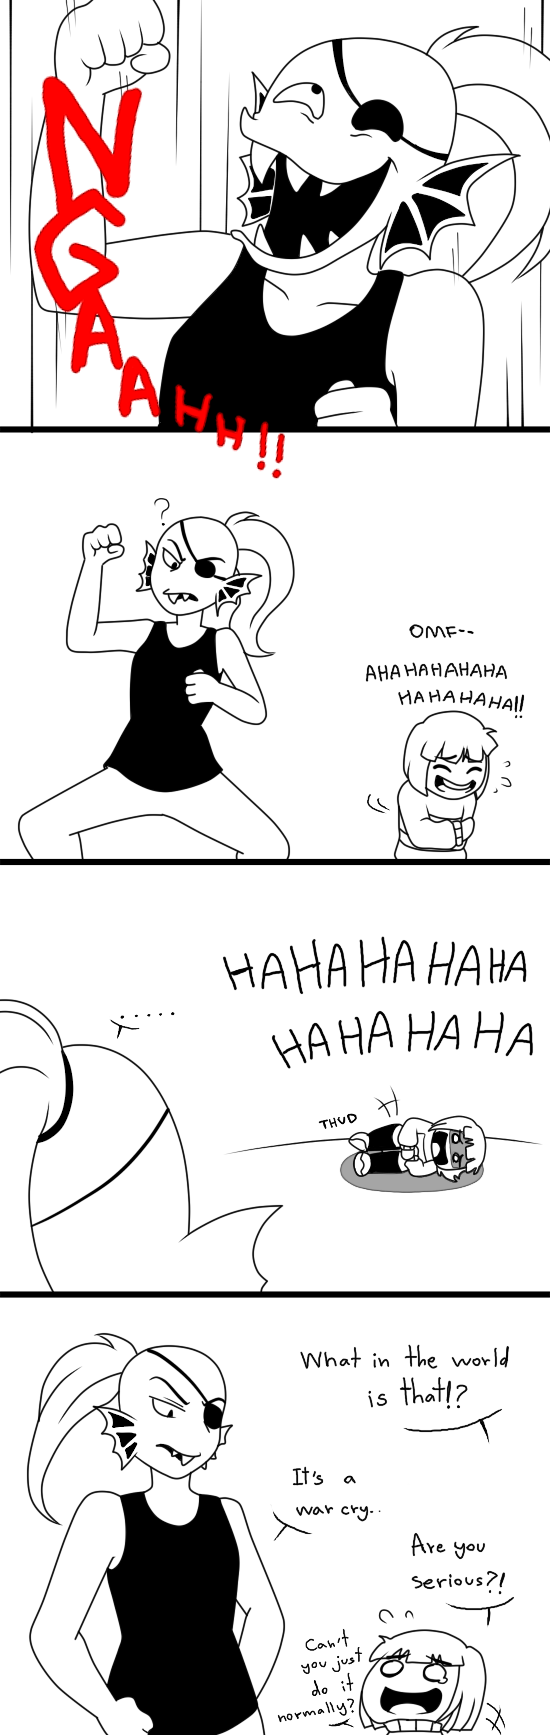 Undertale Comics: Undyne's war cry by aimturein